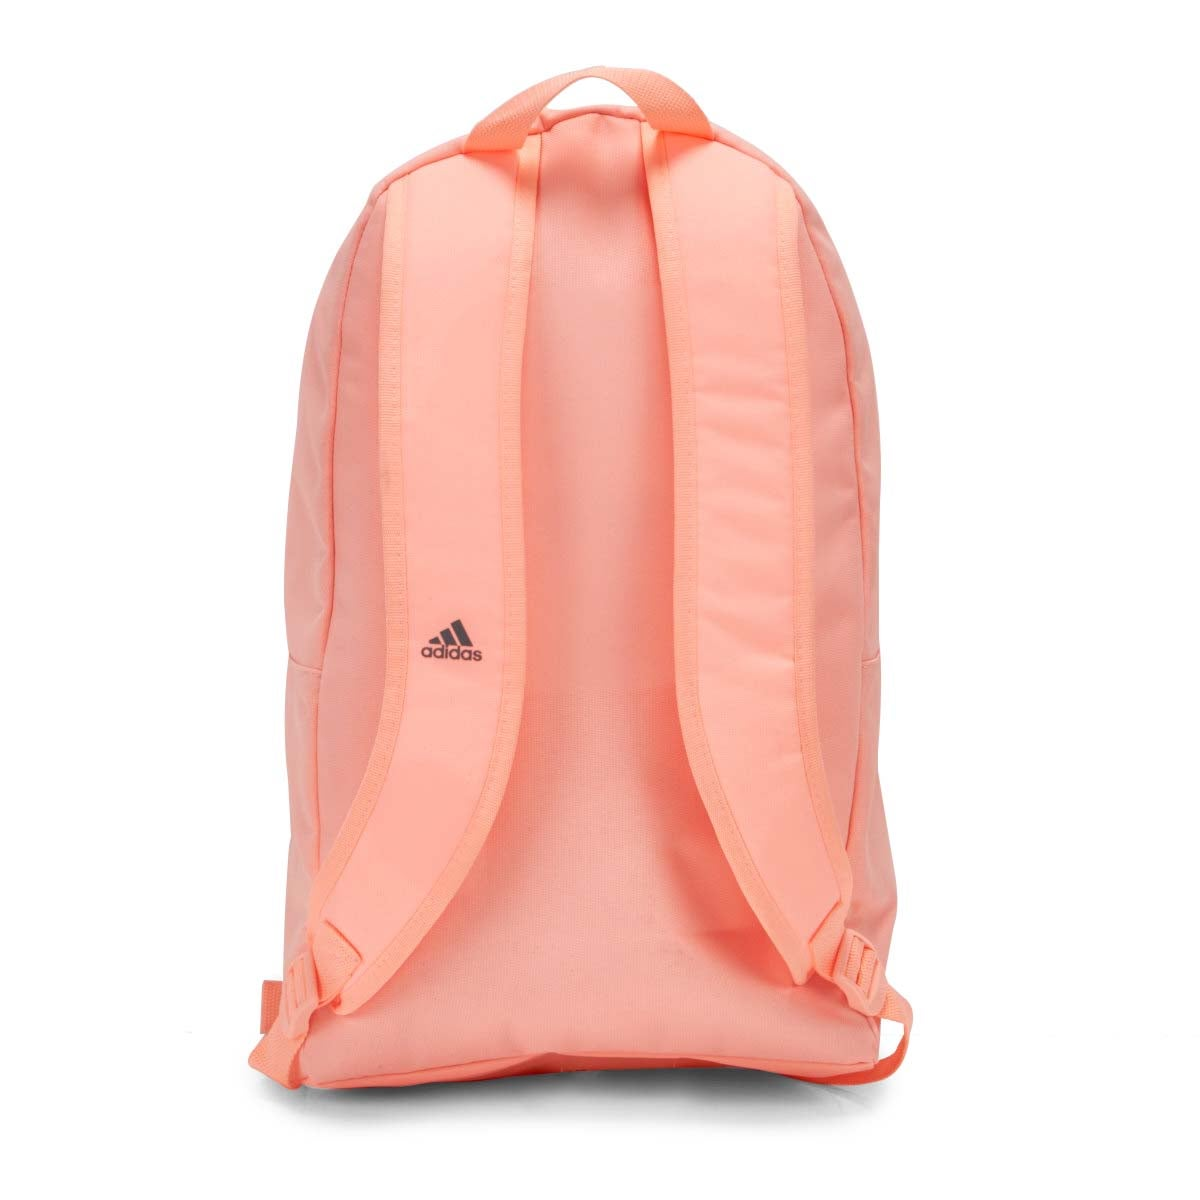 Lds Adidas Classic BP clear org backpack